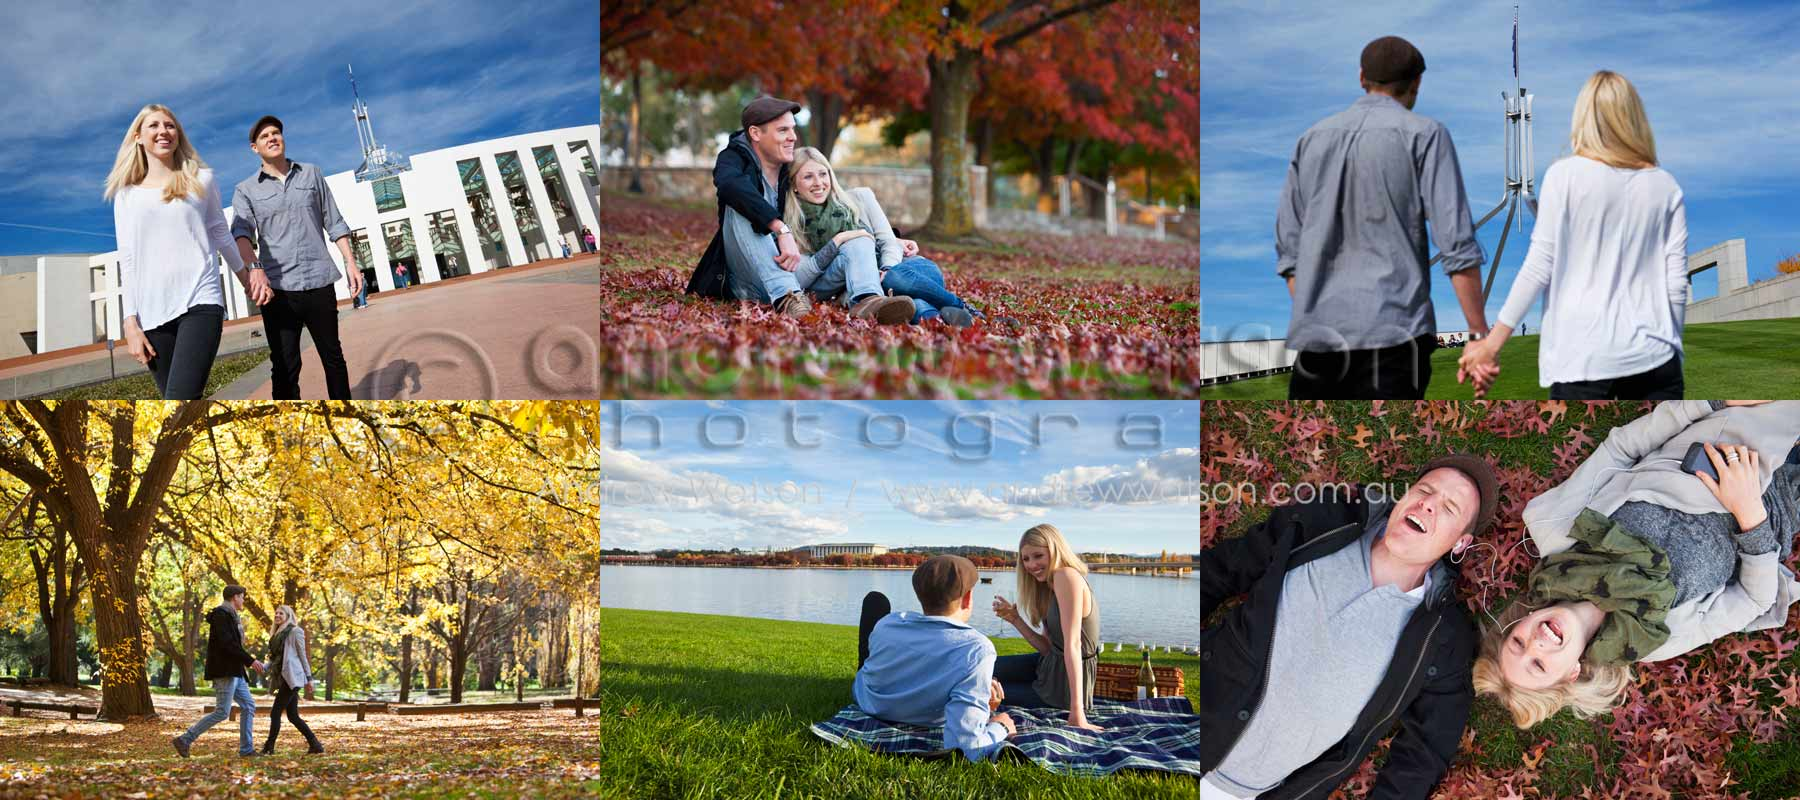 Tourism & Lifestyle Photography - Images of couple exploring the autumn sights of Canberra, ACT